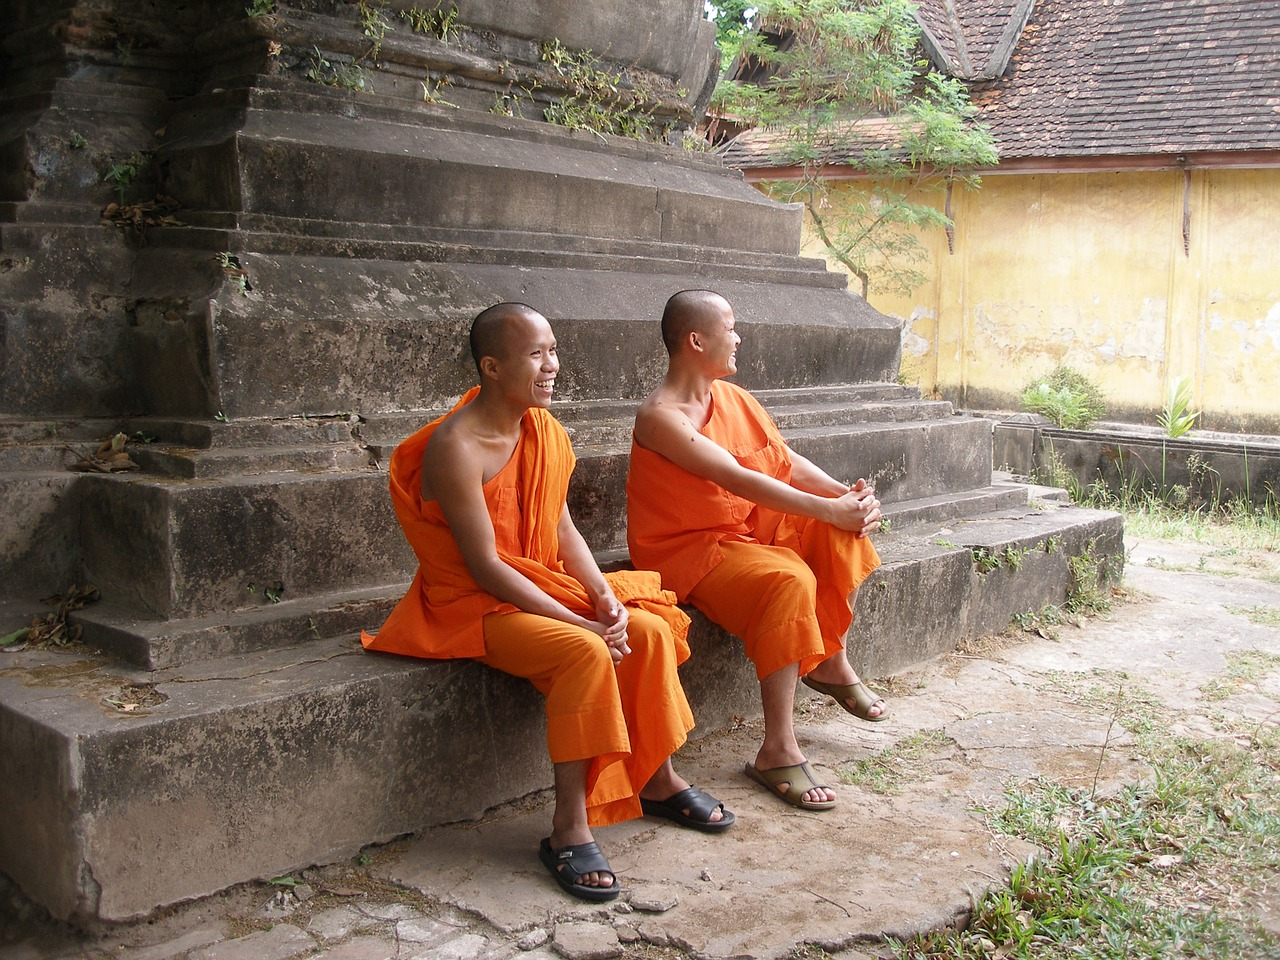 monks laos monks loas free photo